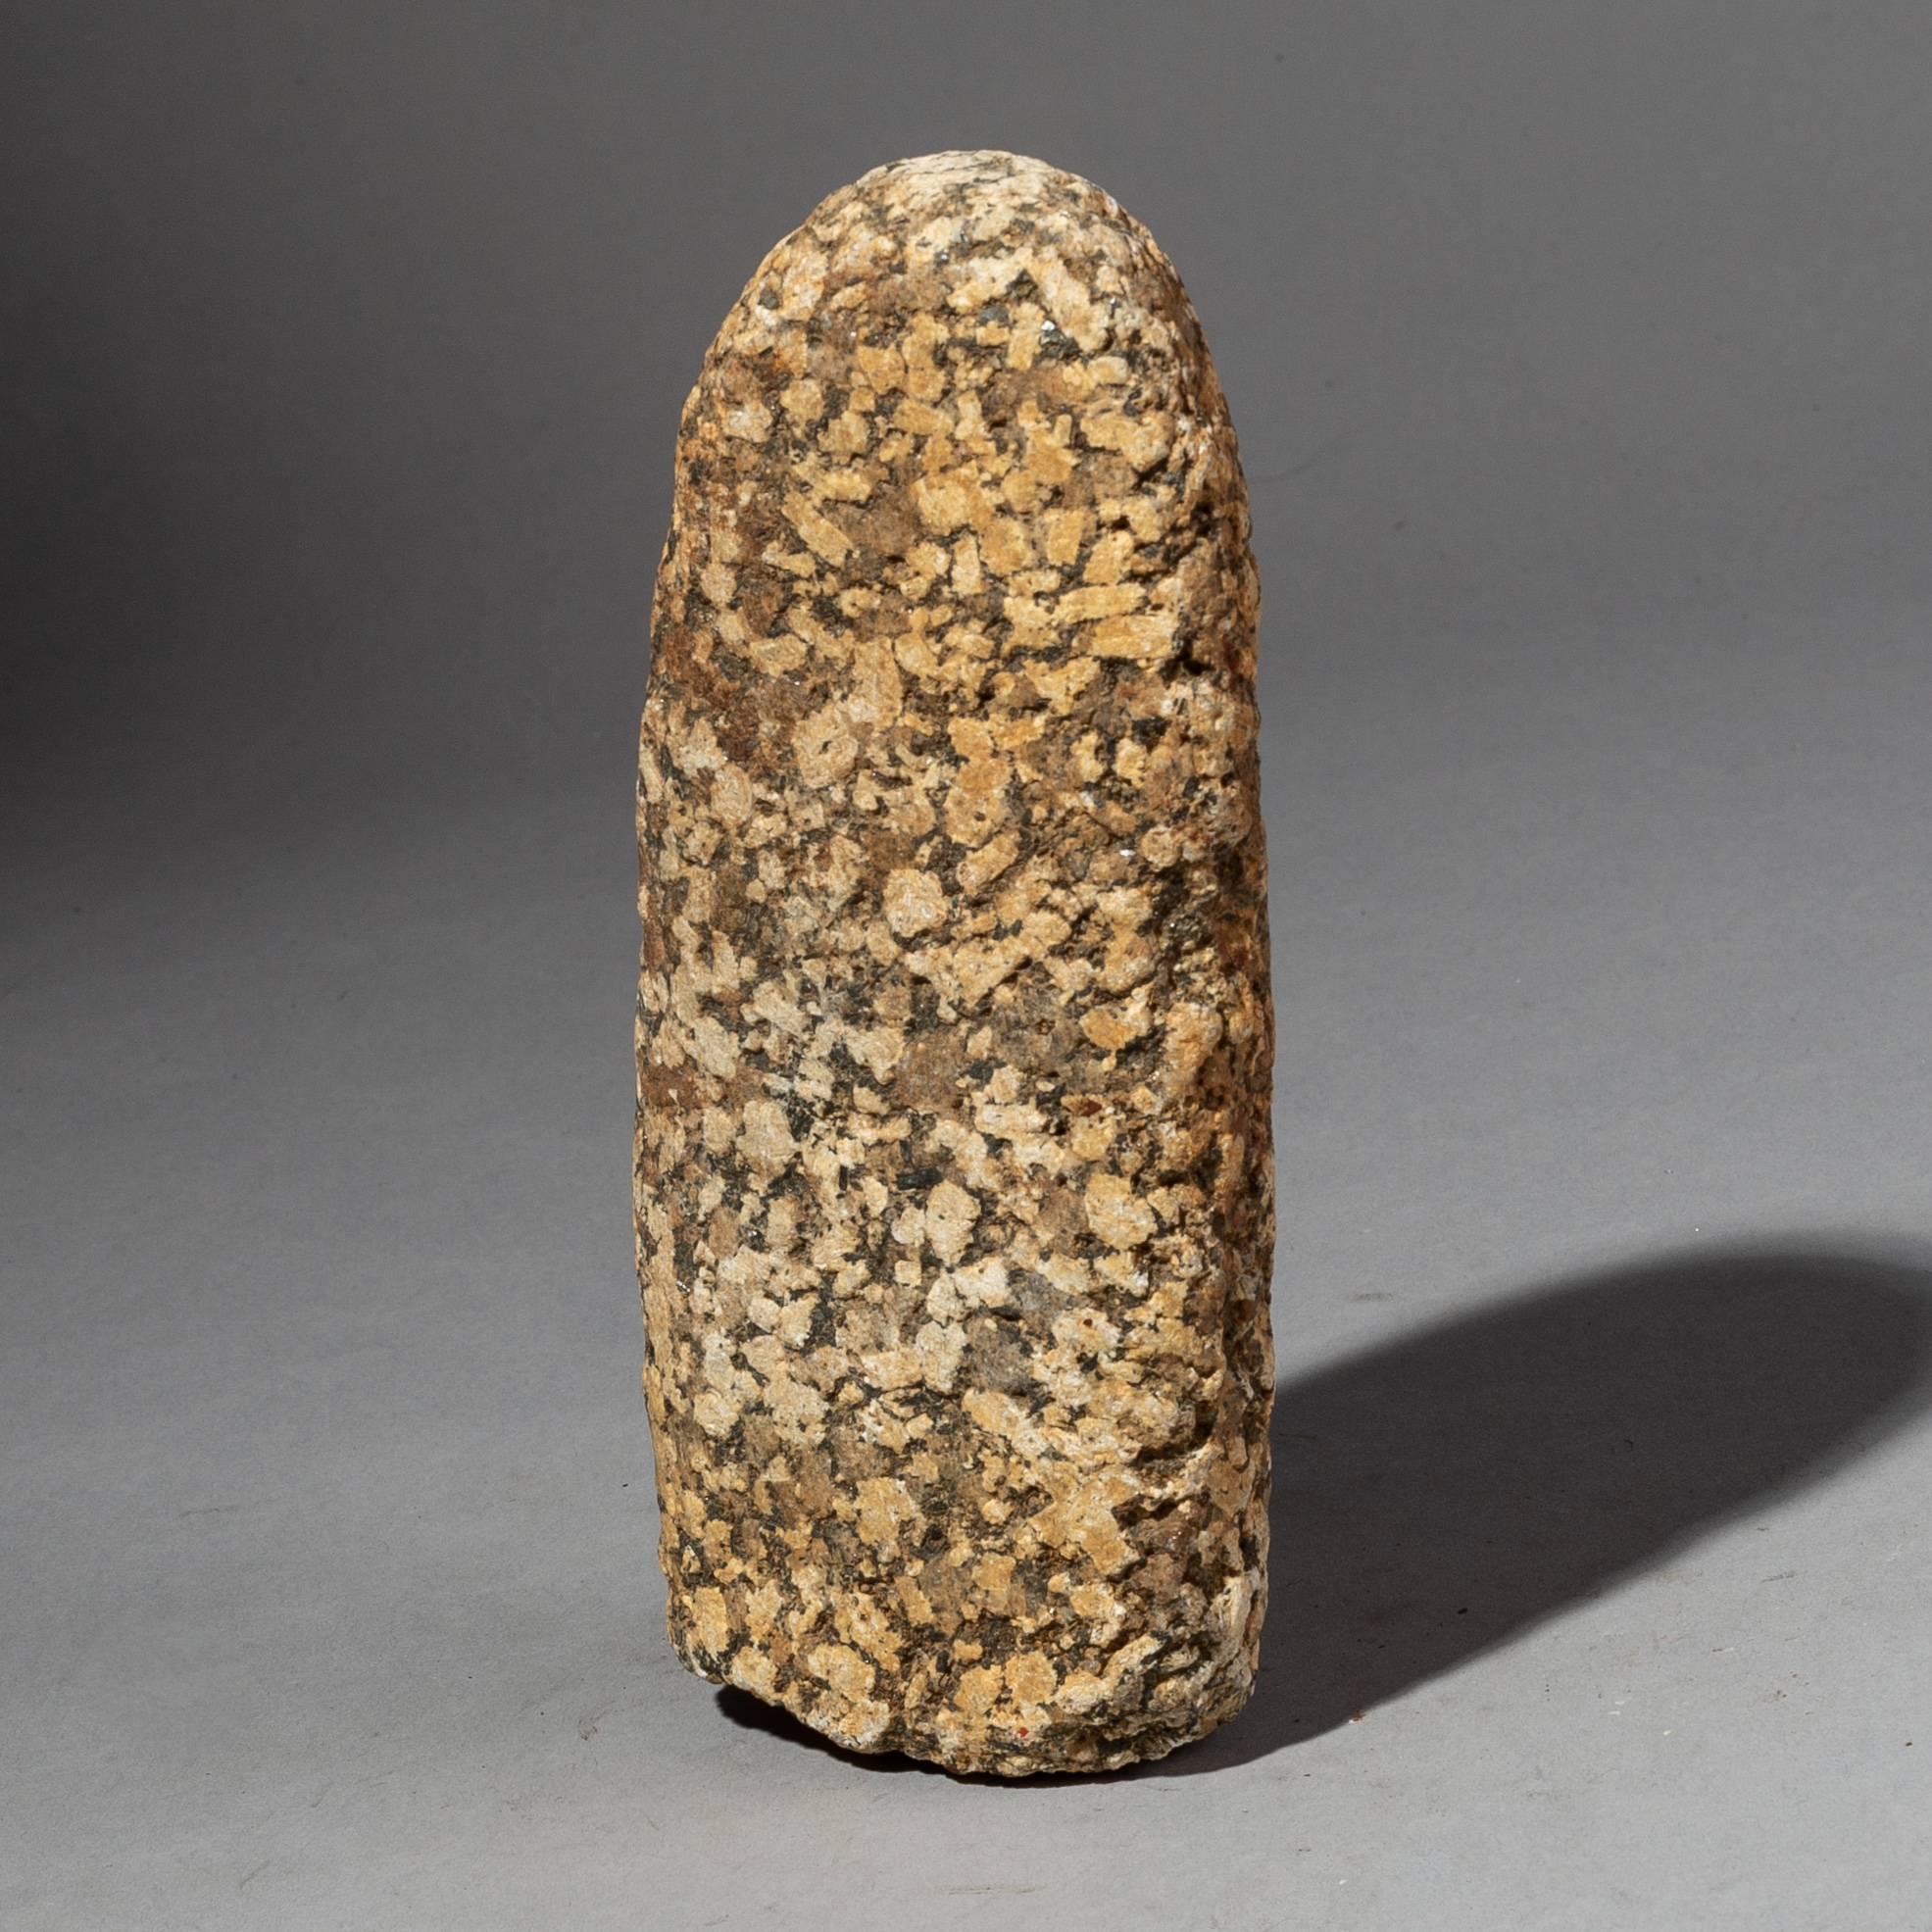 A LARGE PRETTY STONE GRINDER FROM THE SAHARA ( No 2175 )